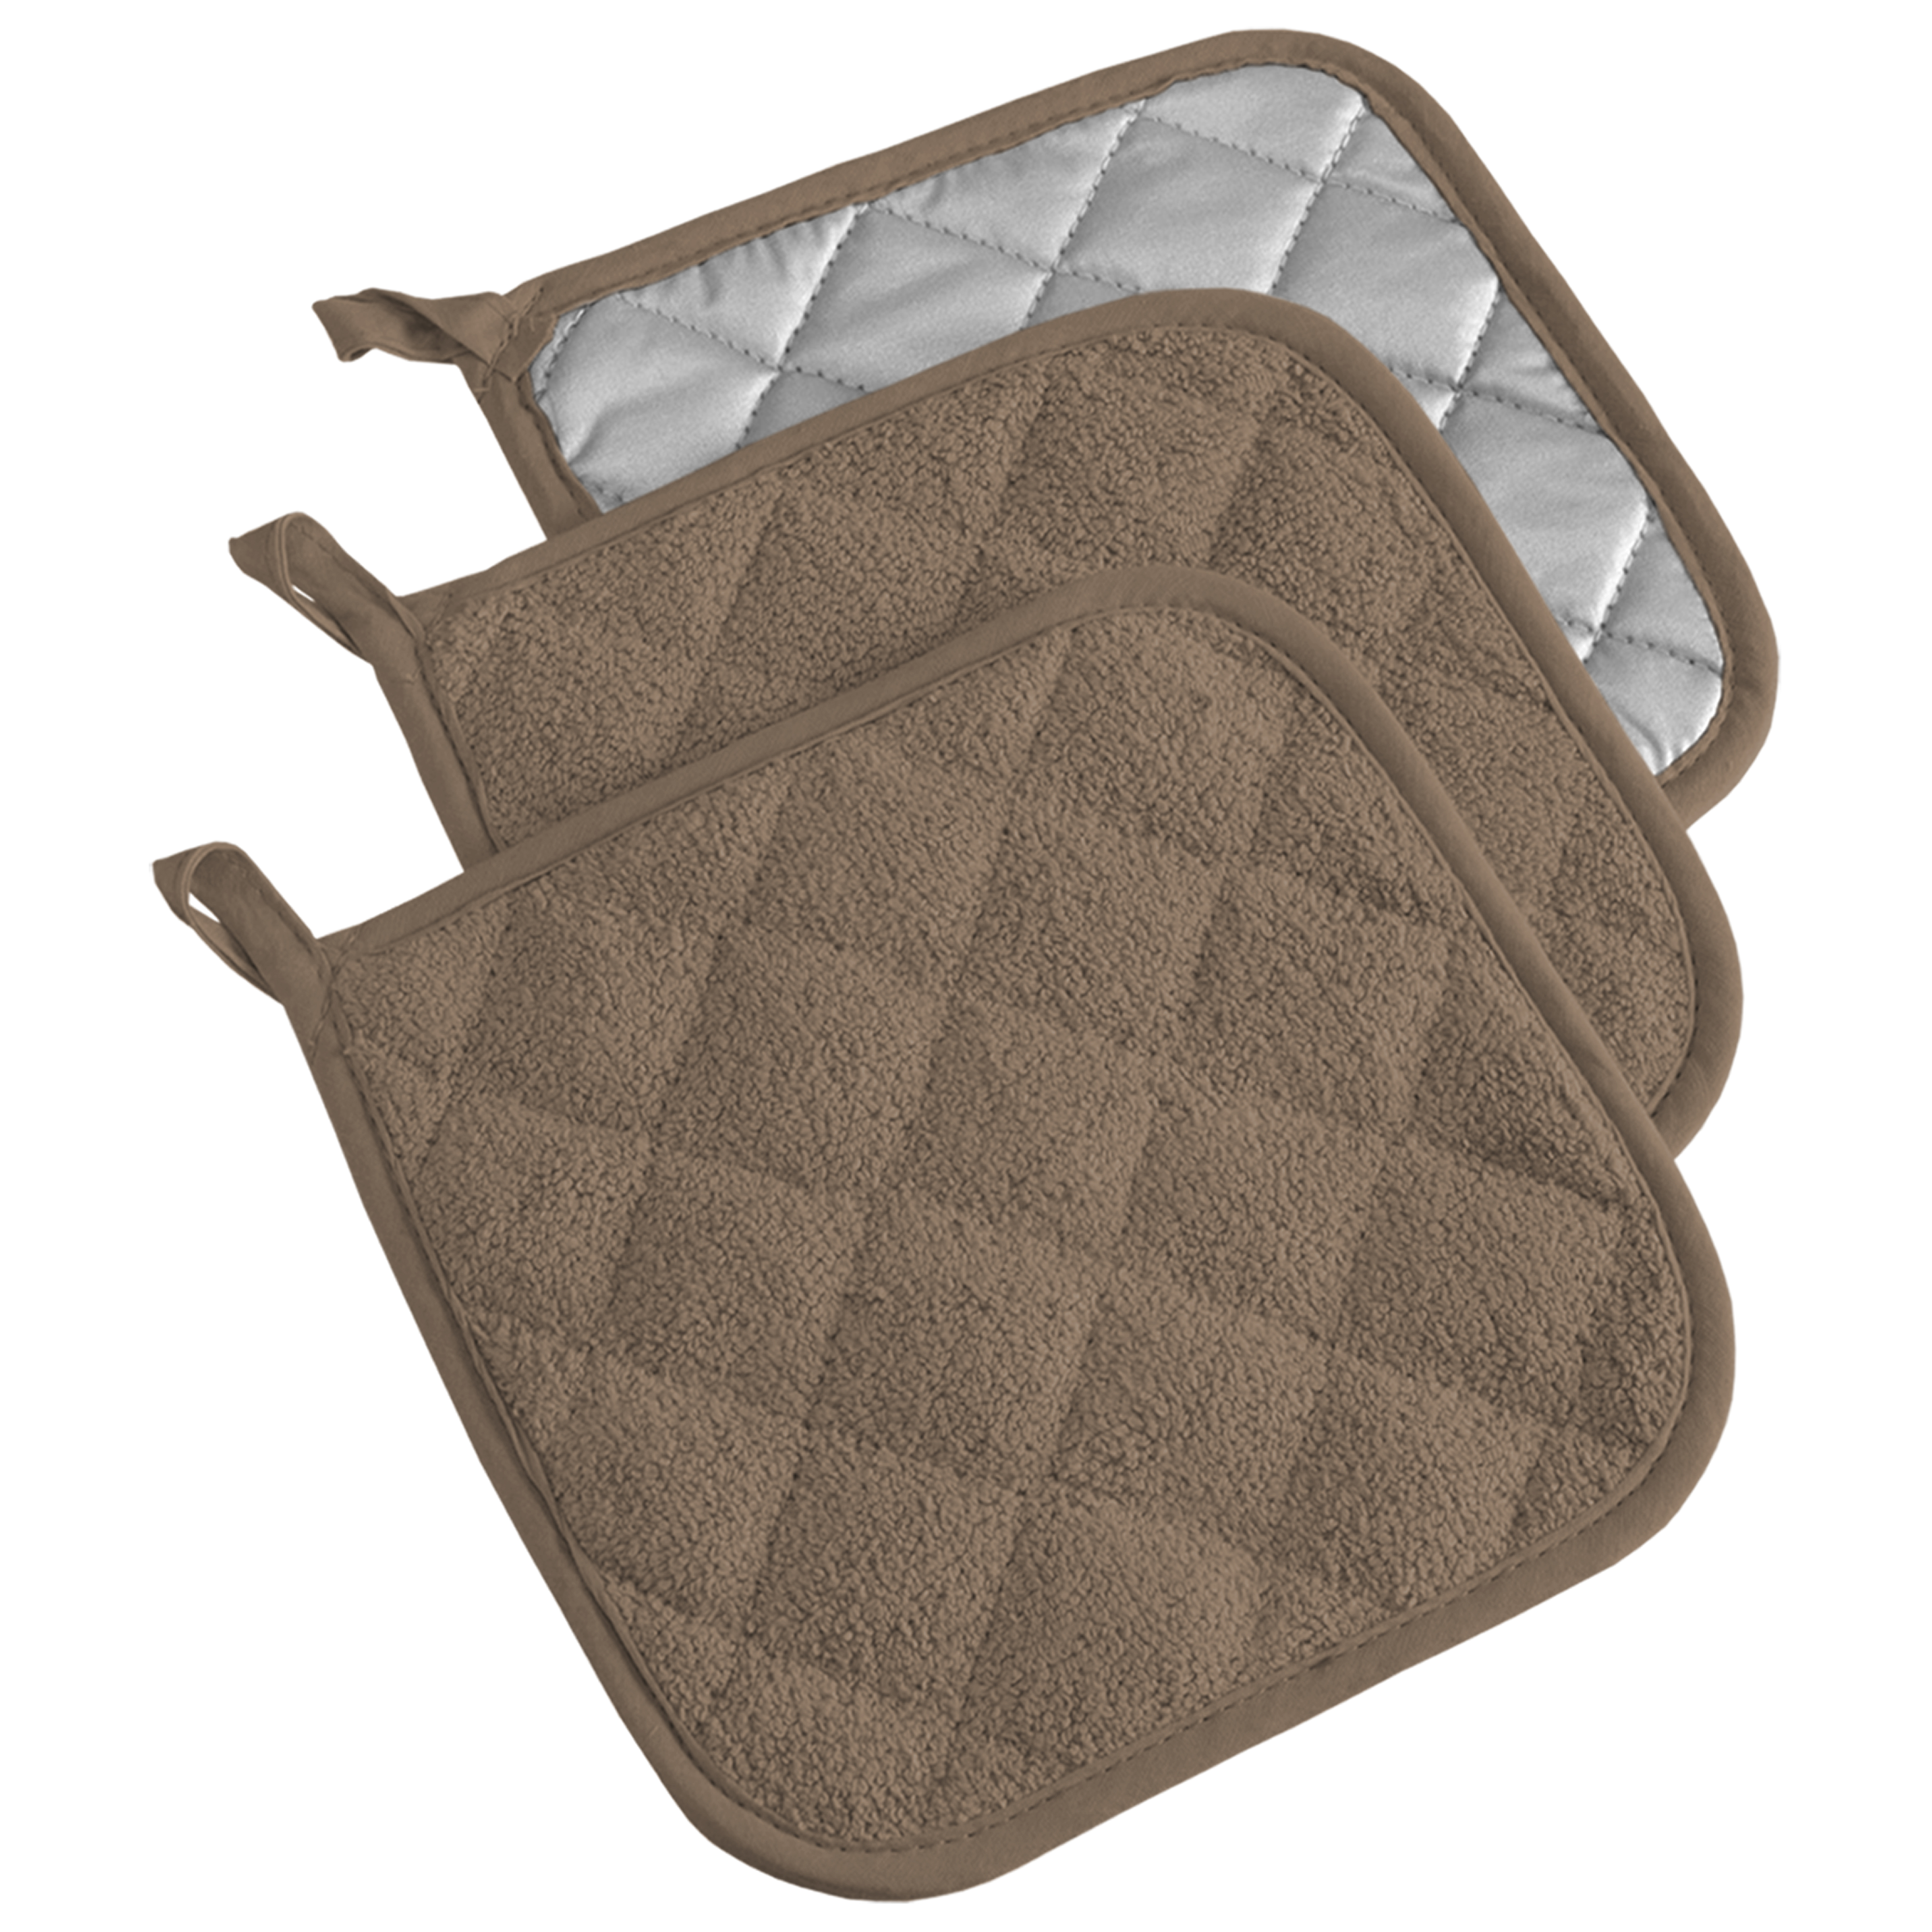 "Design Imports Terry Potholder Set of 3, 7"" x 7"", 100% Cotton, Multiple Colors Available"